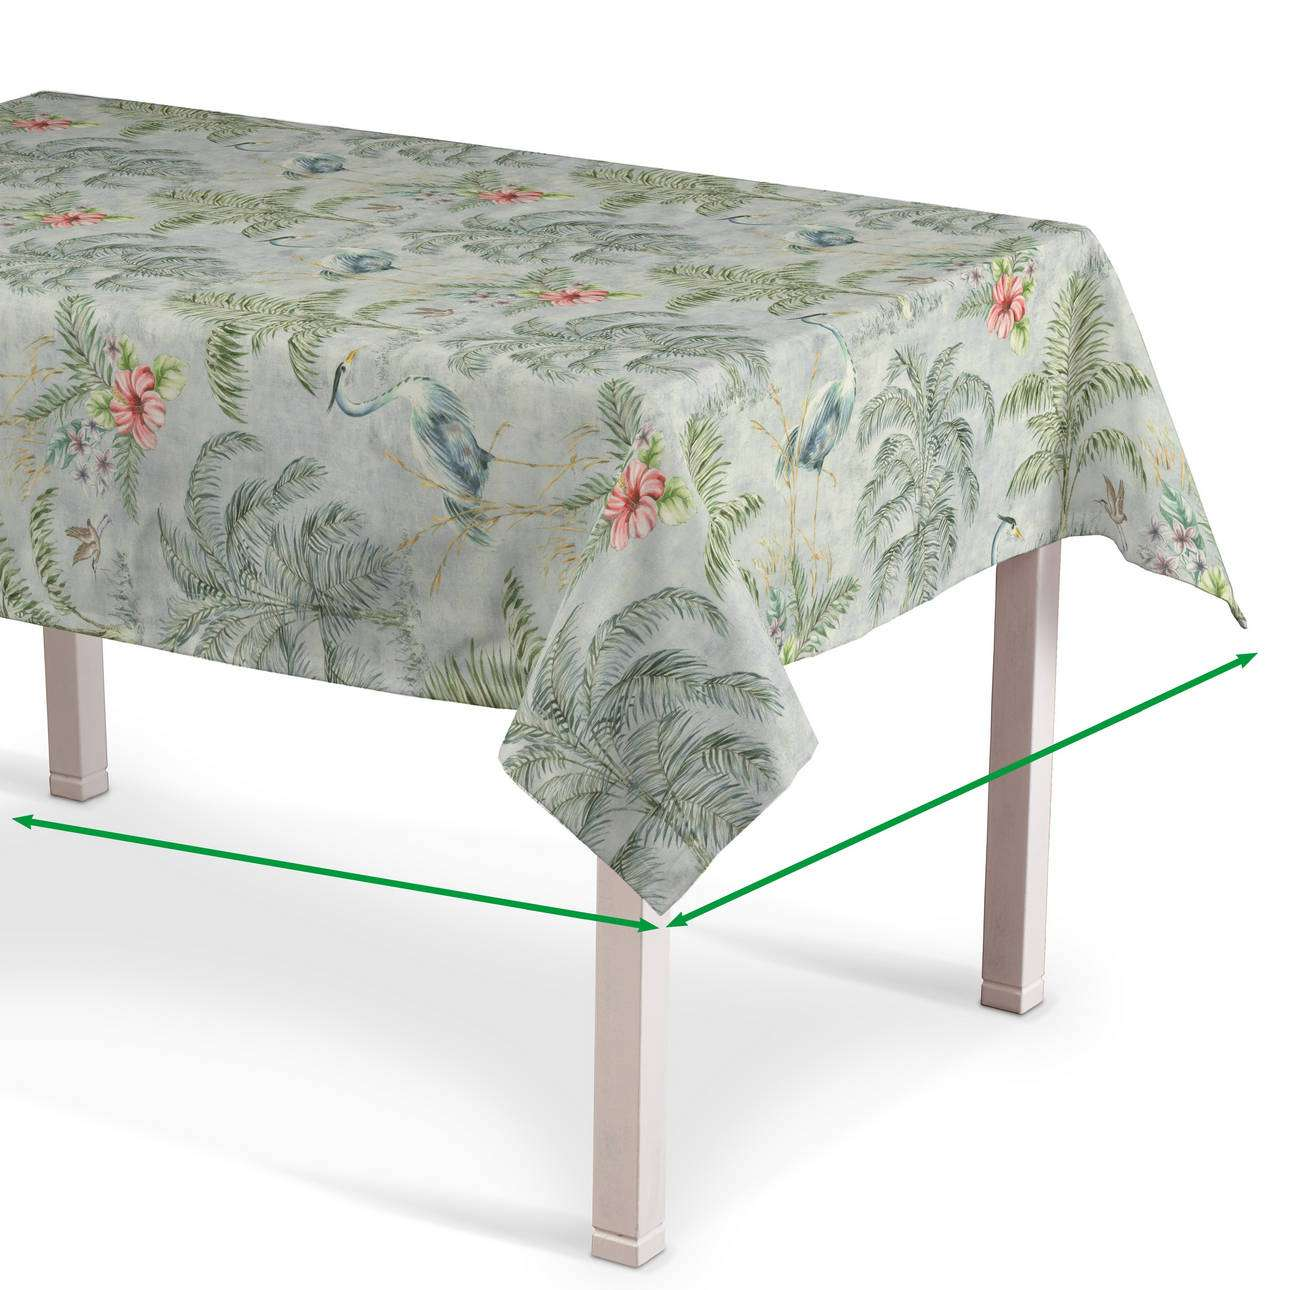 Rectangular tablecloth in collection Tropical Island, fabric: 142-58